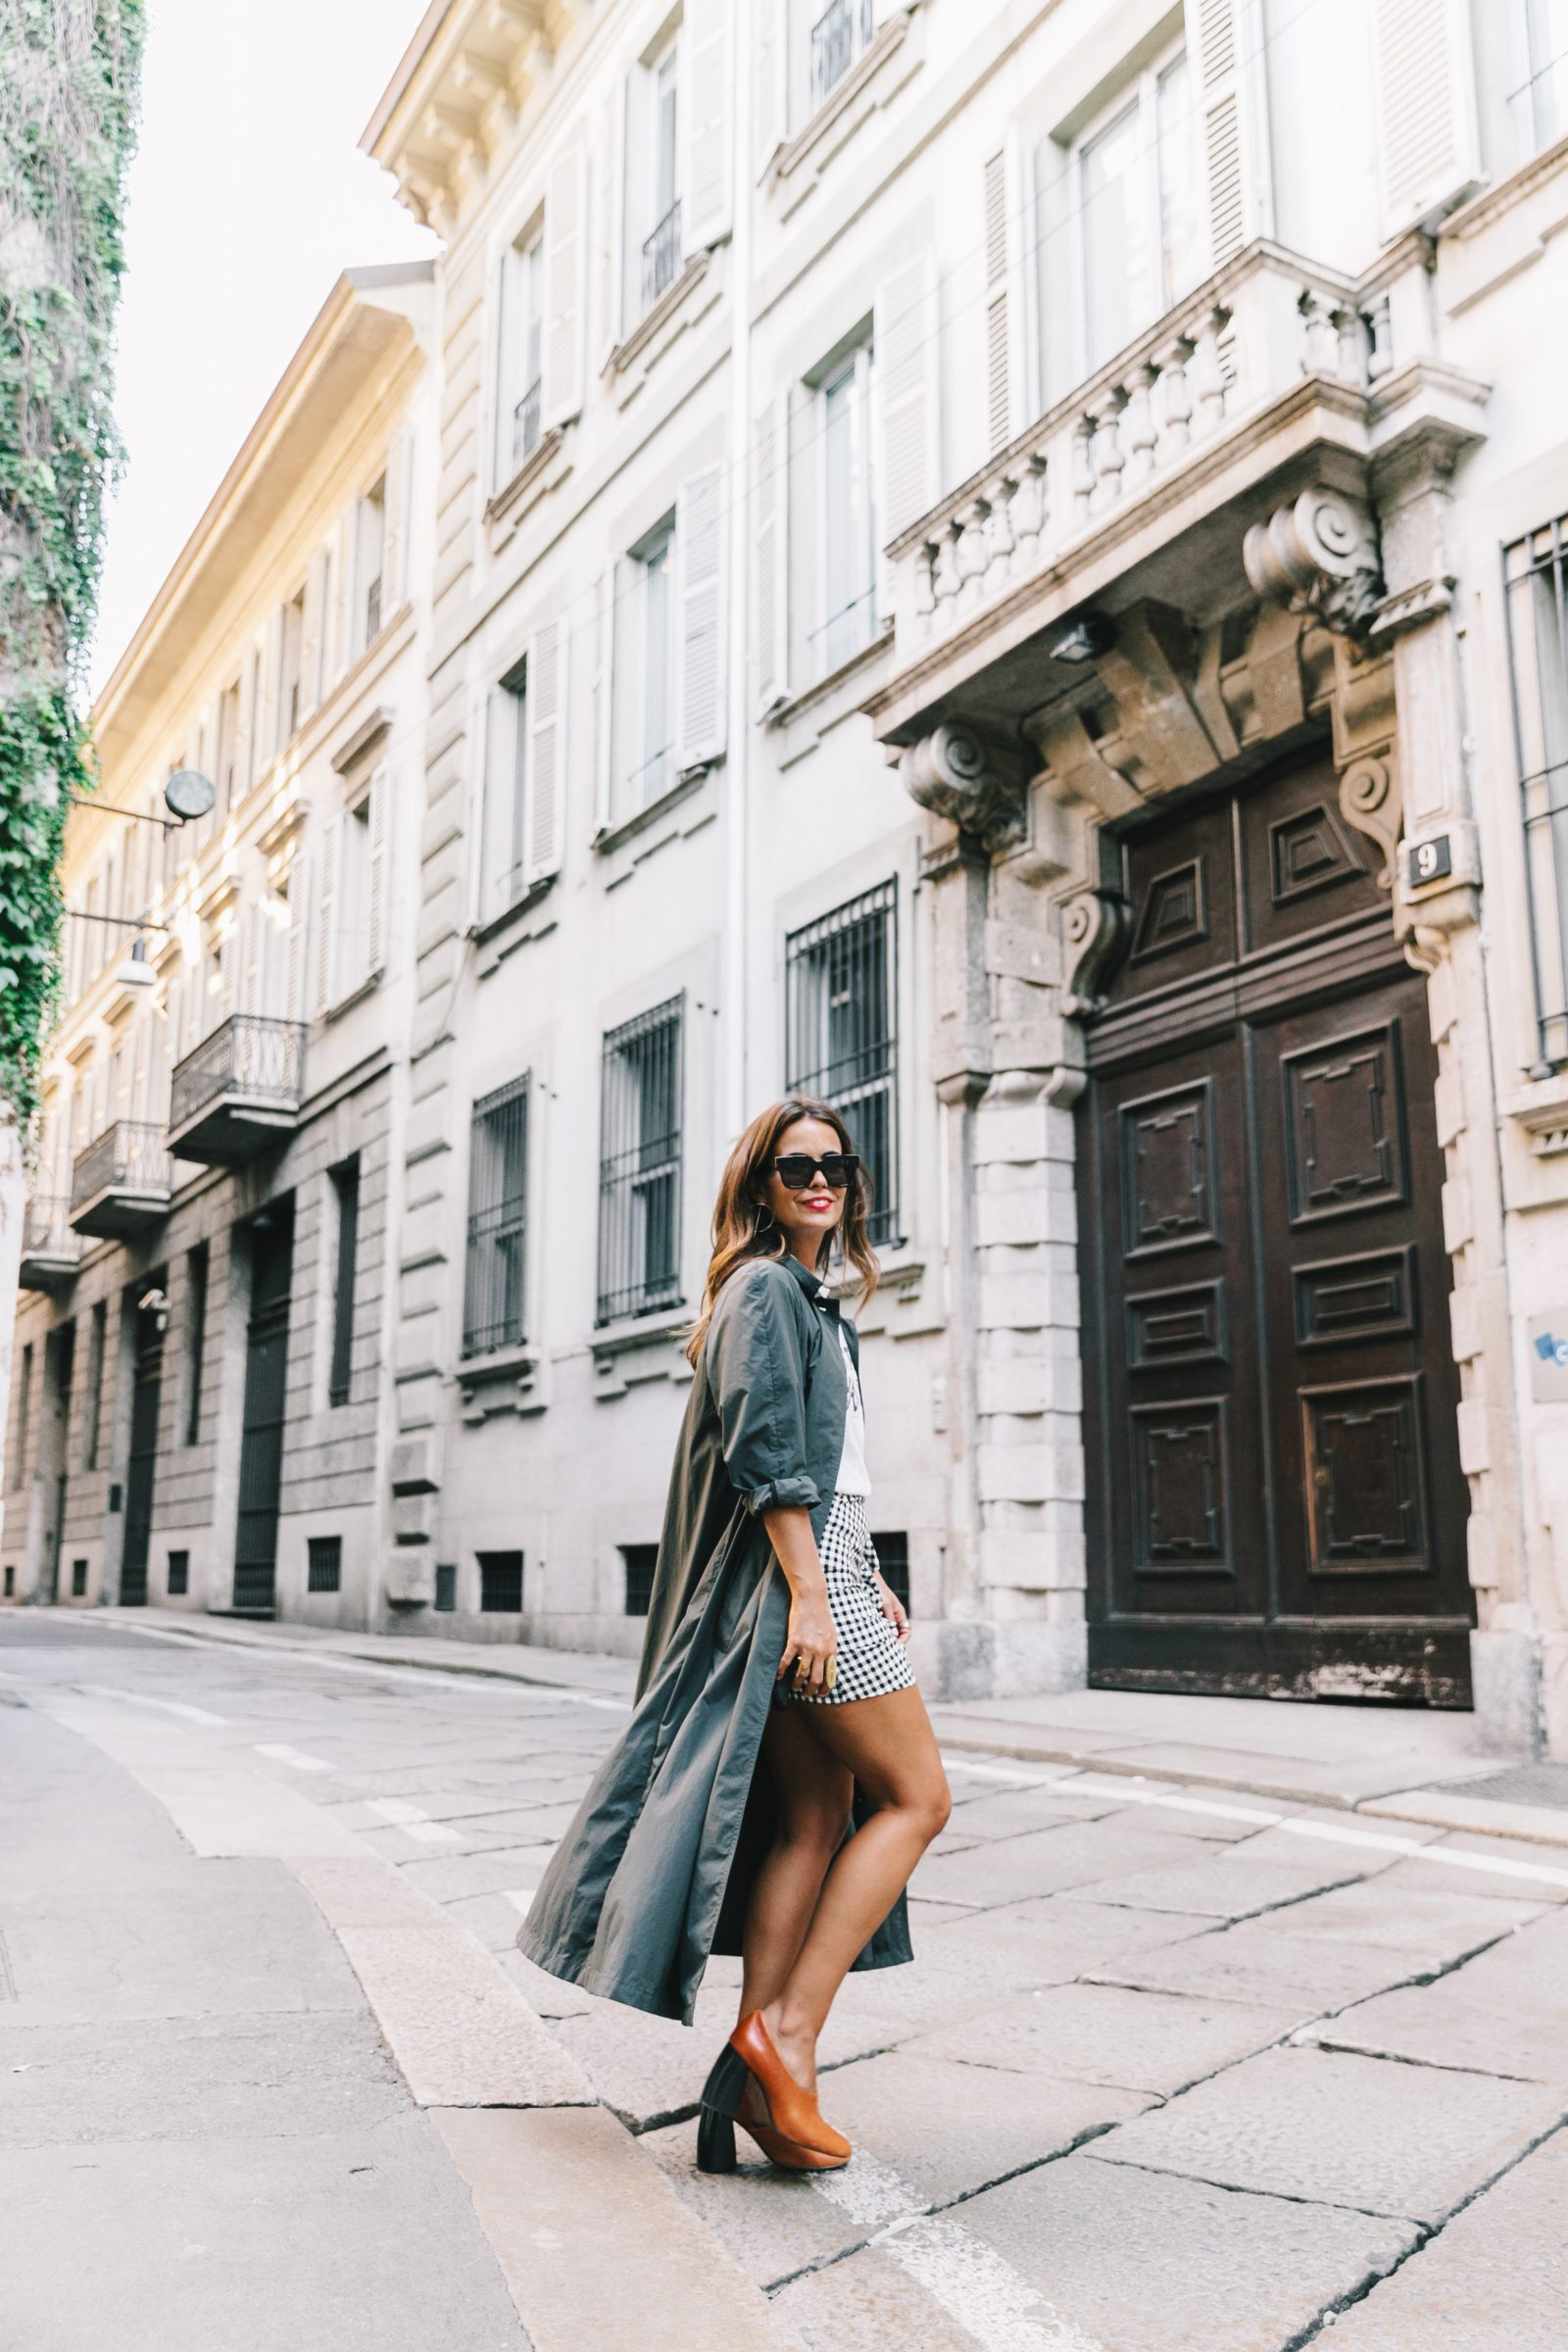 mfw-milan_fashion_week_ss17-street_style-outfits-collage_vintage-bottega_veneta-bluemarine-jil_sander-7